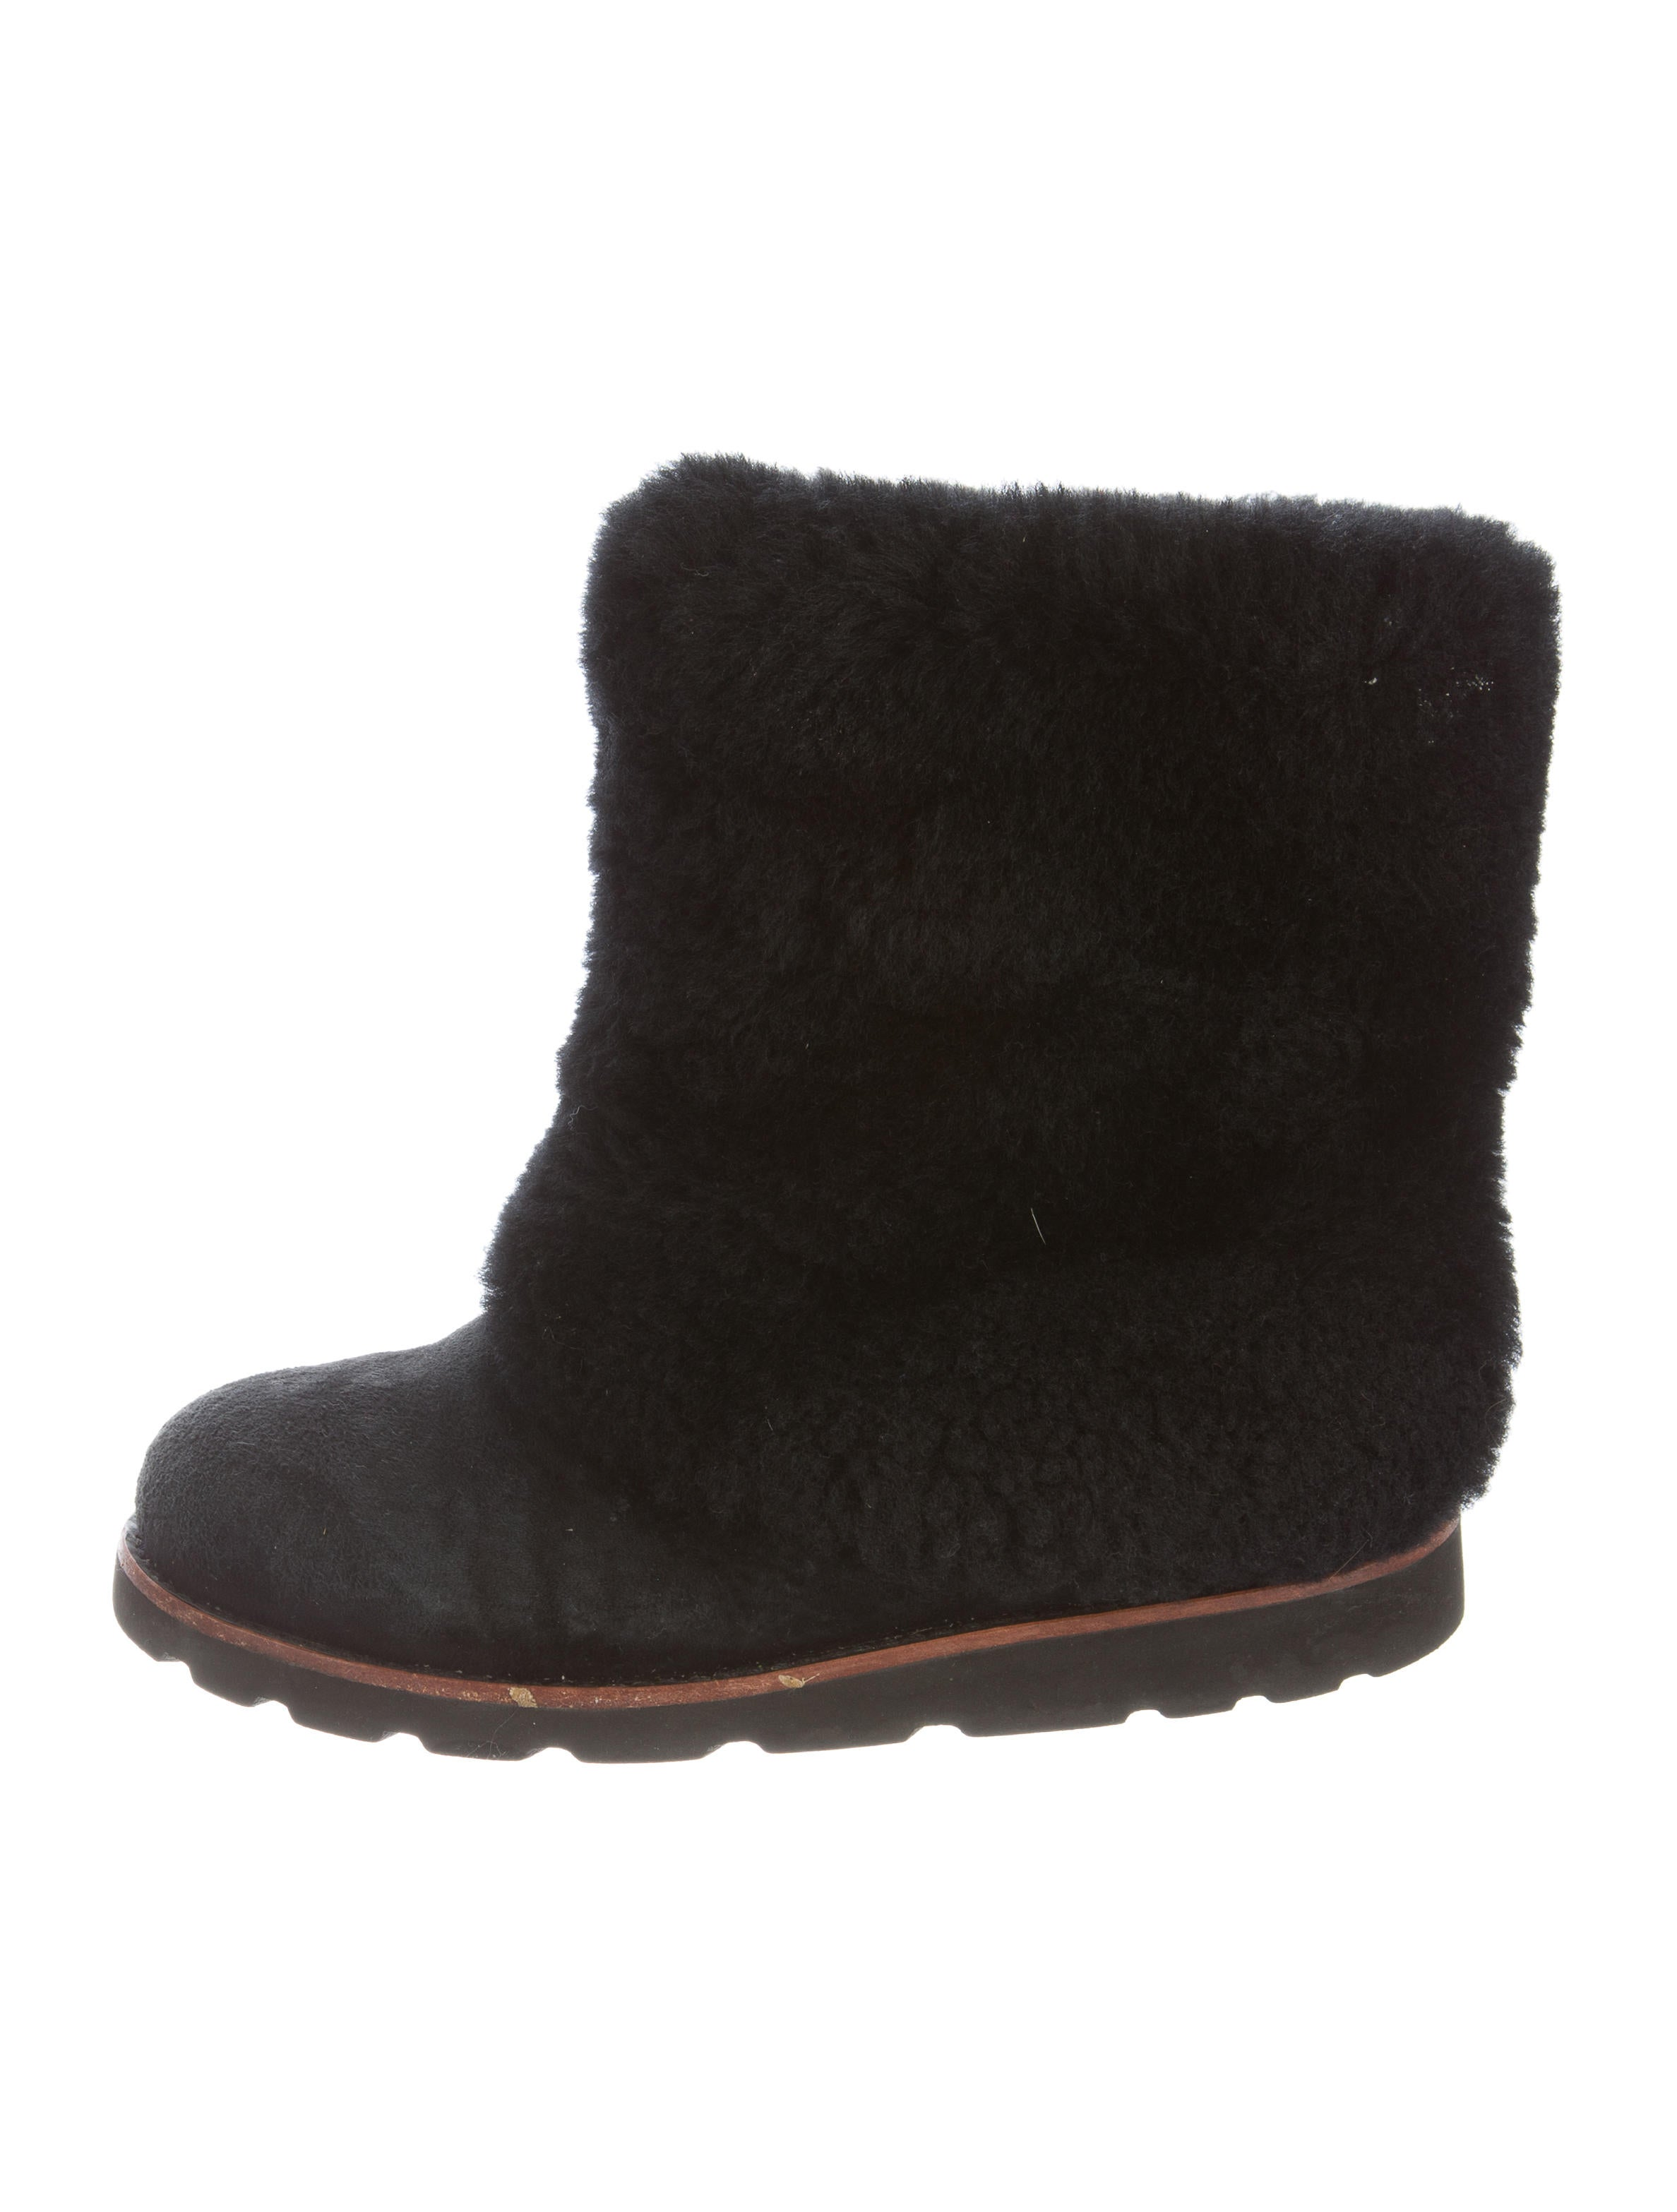 5bfb9be80c5 Maylin Shearling Ankle Boots